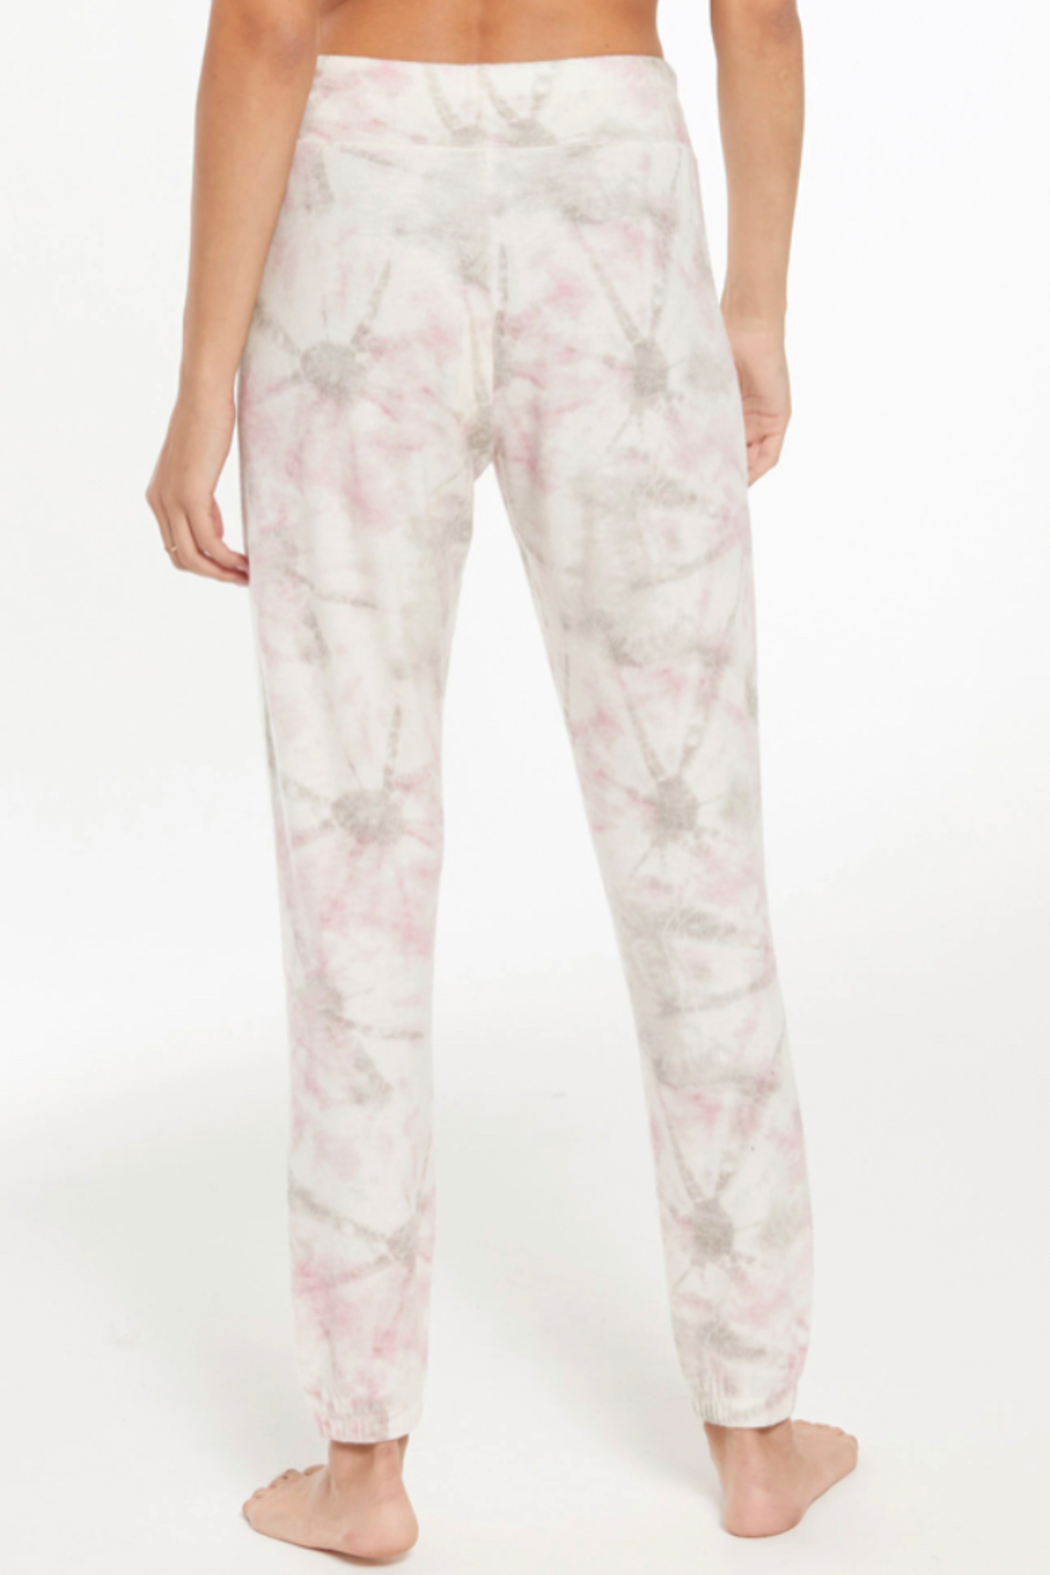 z supply Ava Faded Tie Dye Jogger - Side Cropped Image